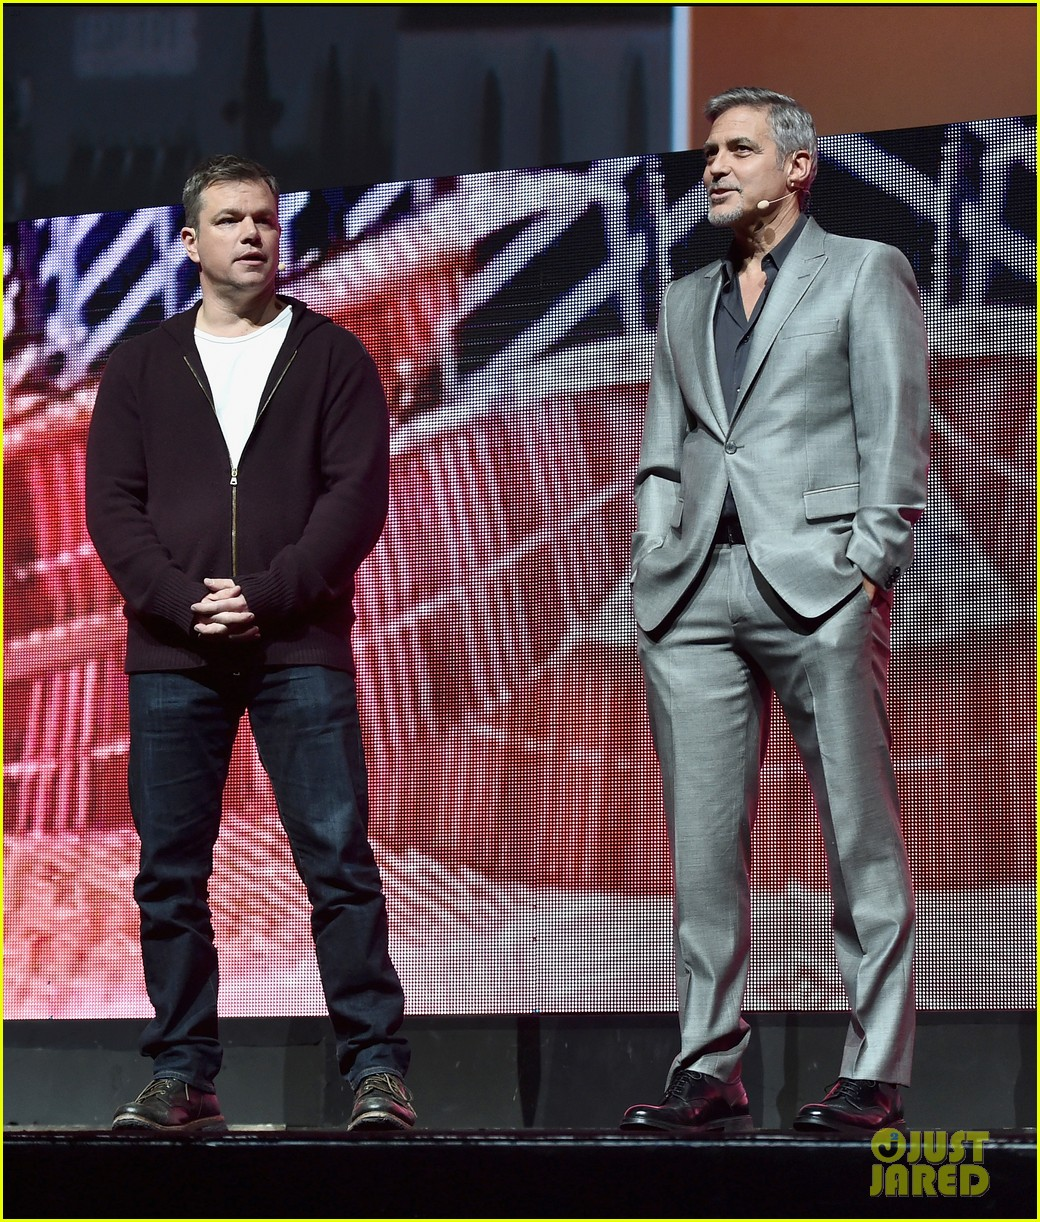 George Clooney at CinemaCon presenting Suburbicon George-clooney-julianne-moore-matt-damon-cinemacon-2017-05